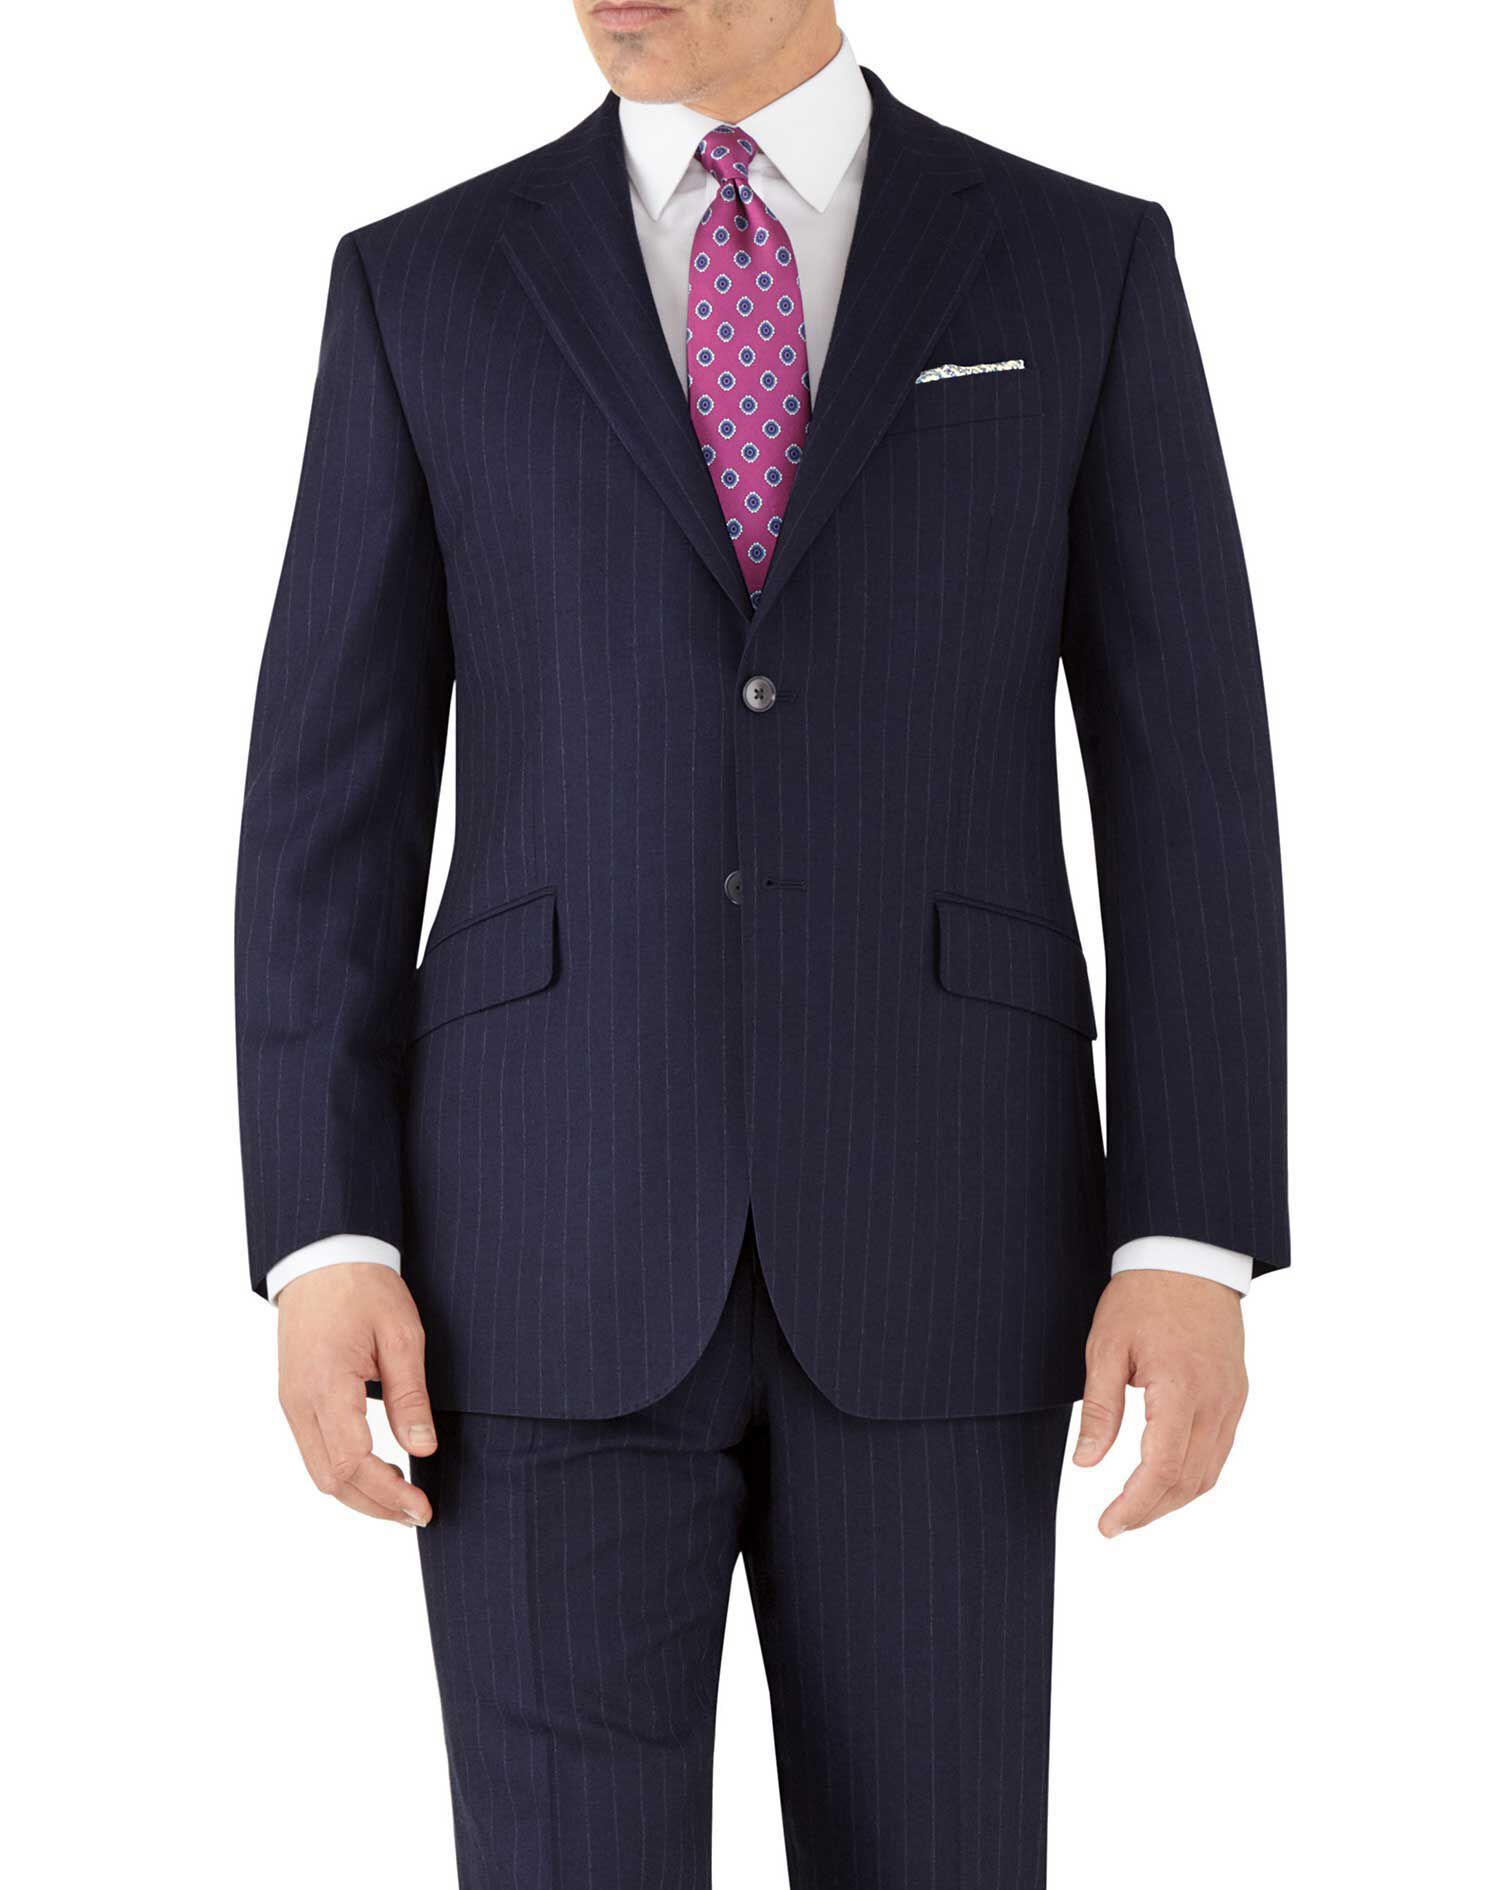 Navy Stripe Classic Fit Flannel Business Suit Wool Jacket Size 44 Short by Charles Tyrwhitt